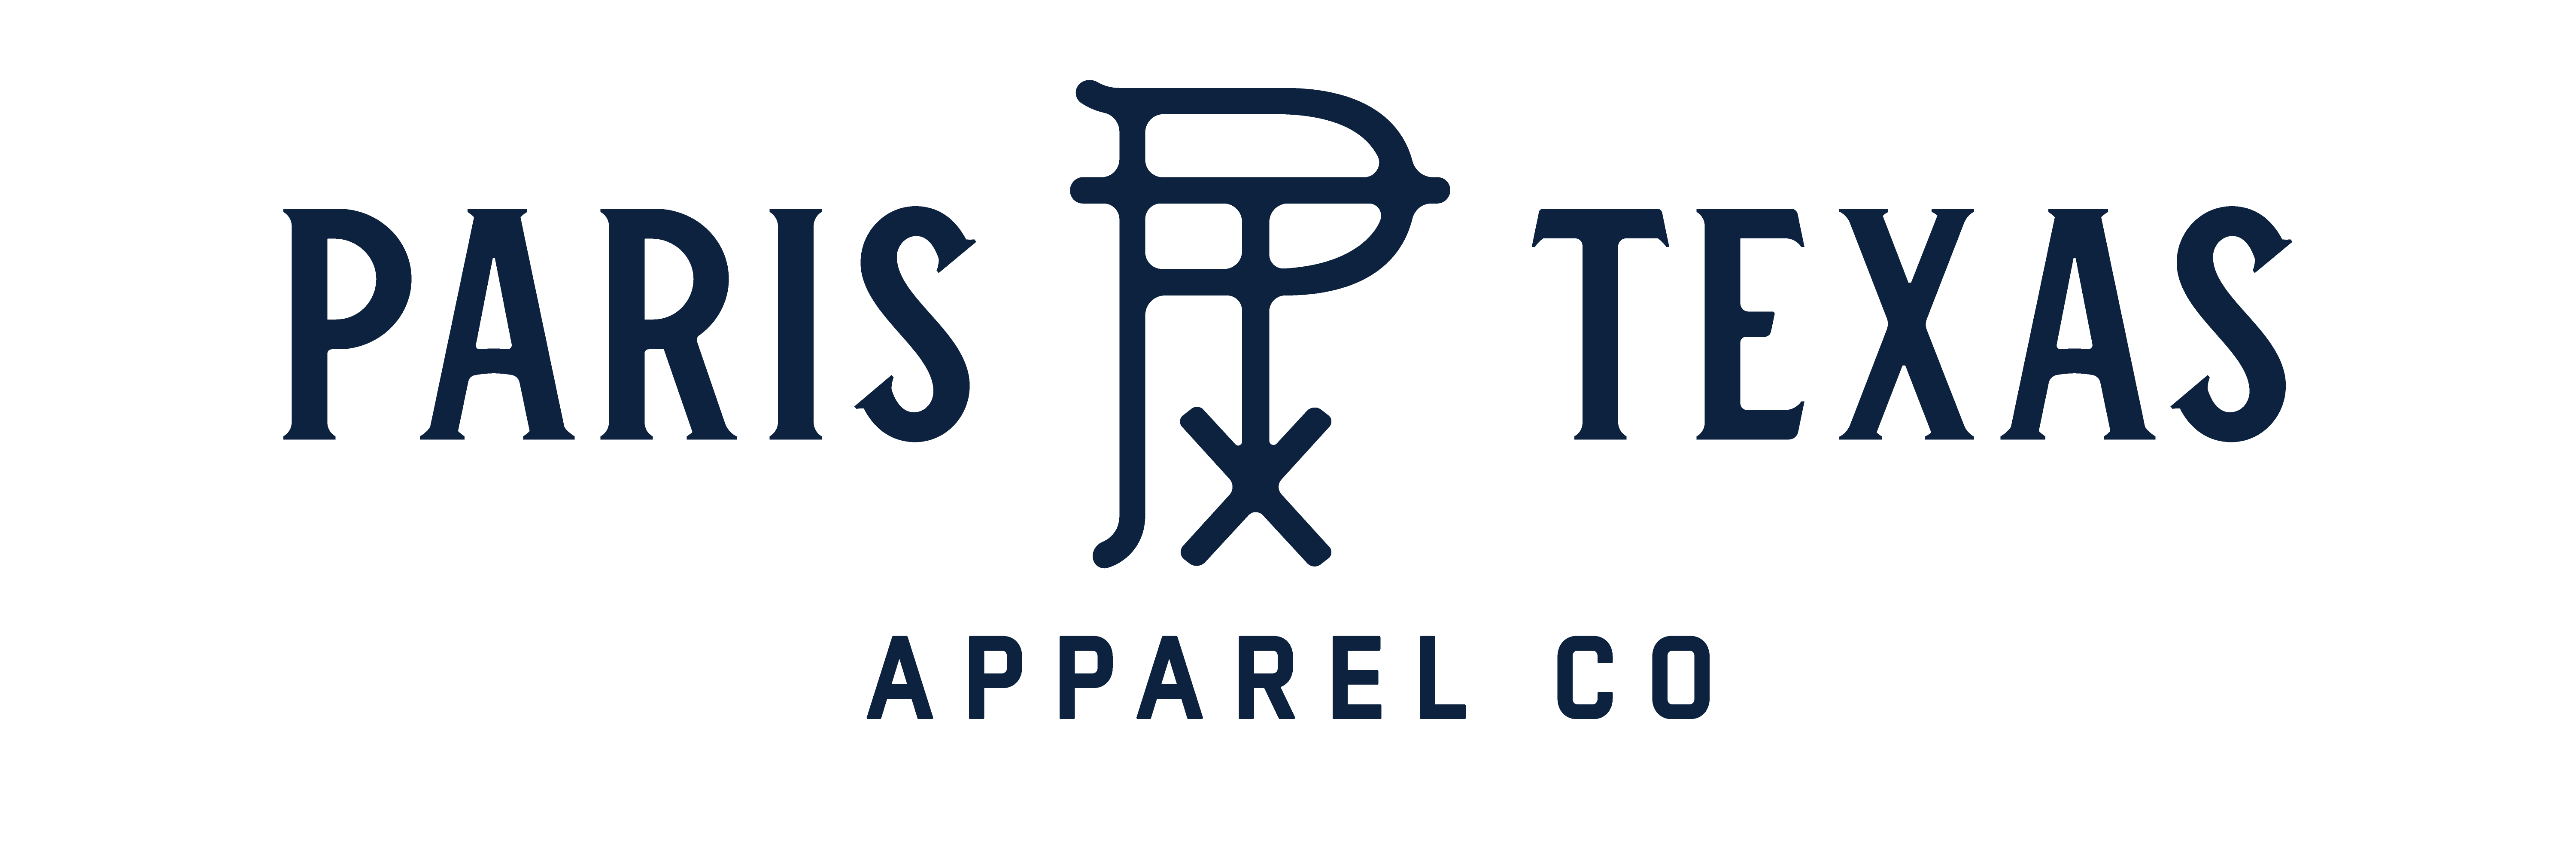 Paris Texas Apparel Co